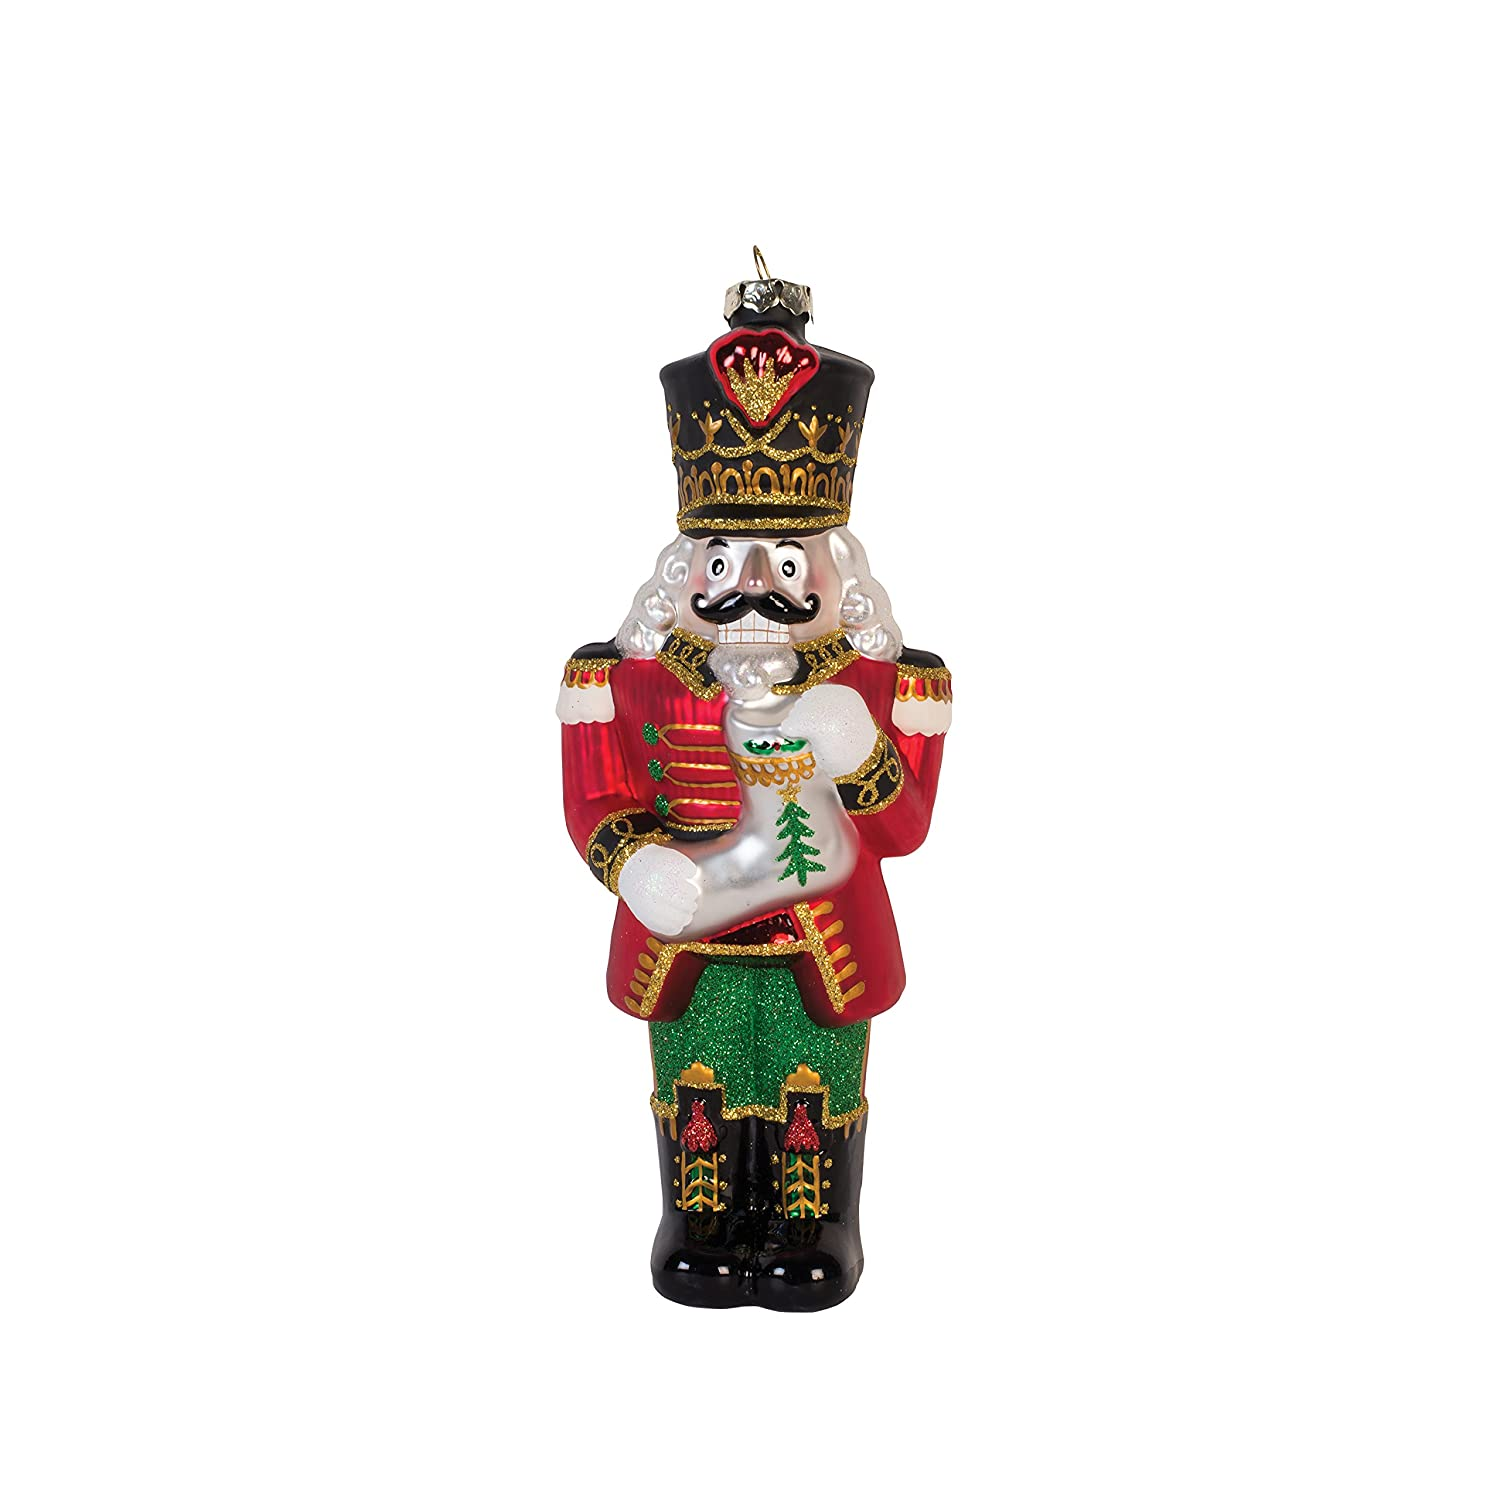 Amazoncom Fitz And Floyd Coleen Christian Burke Kennedy Ornament, Red